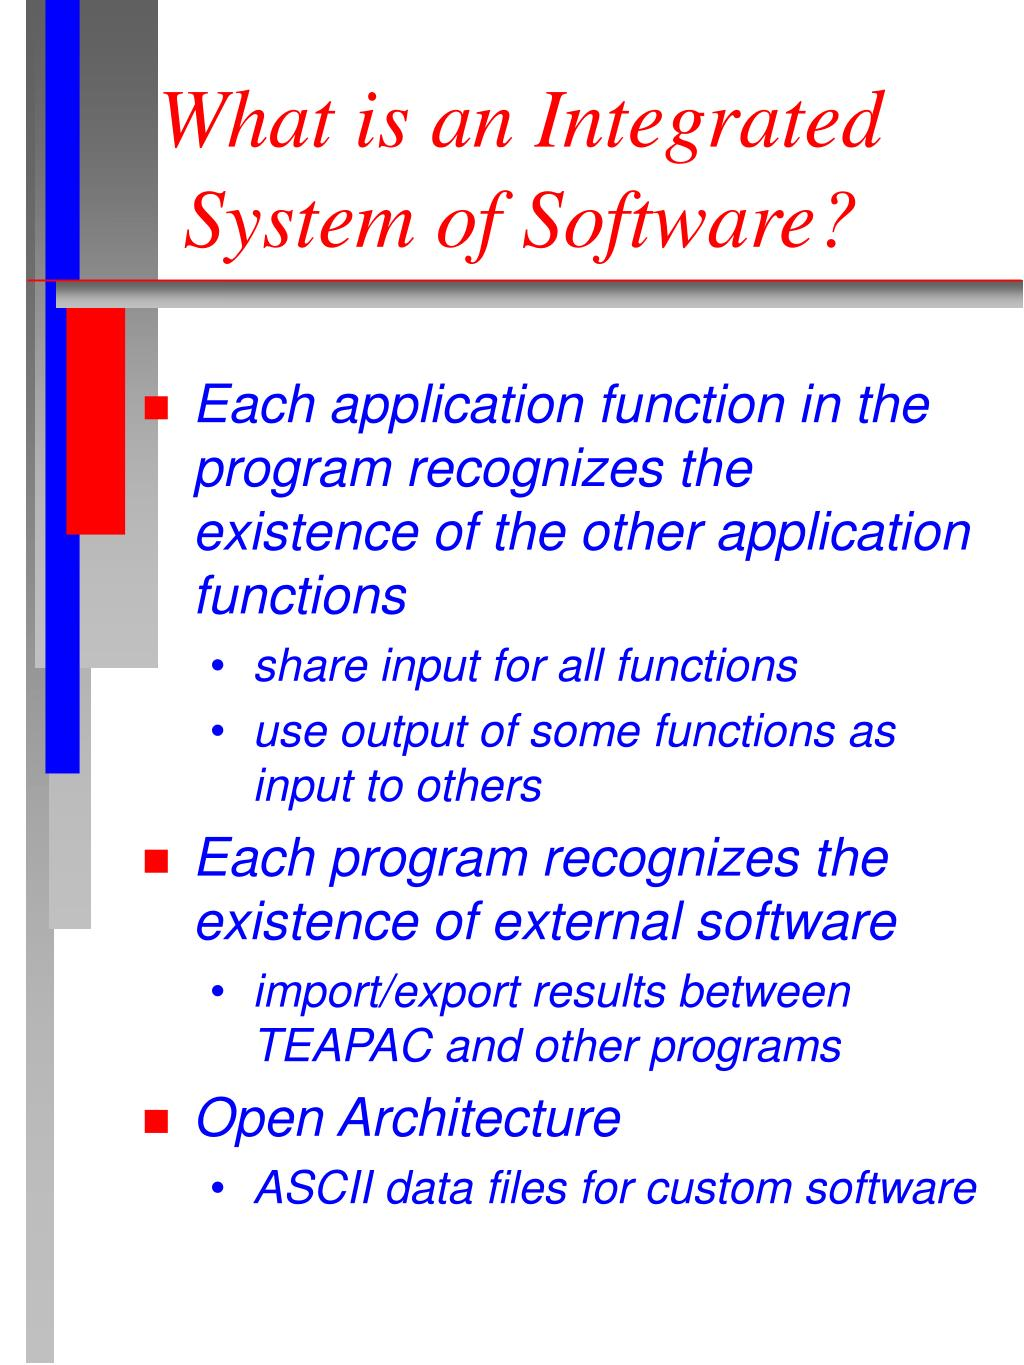 What is an Integrated System of Software?